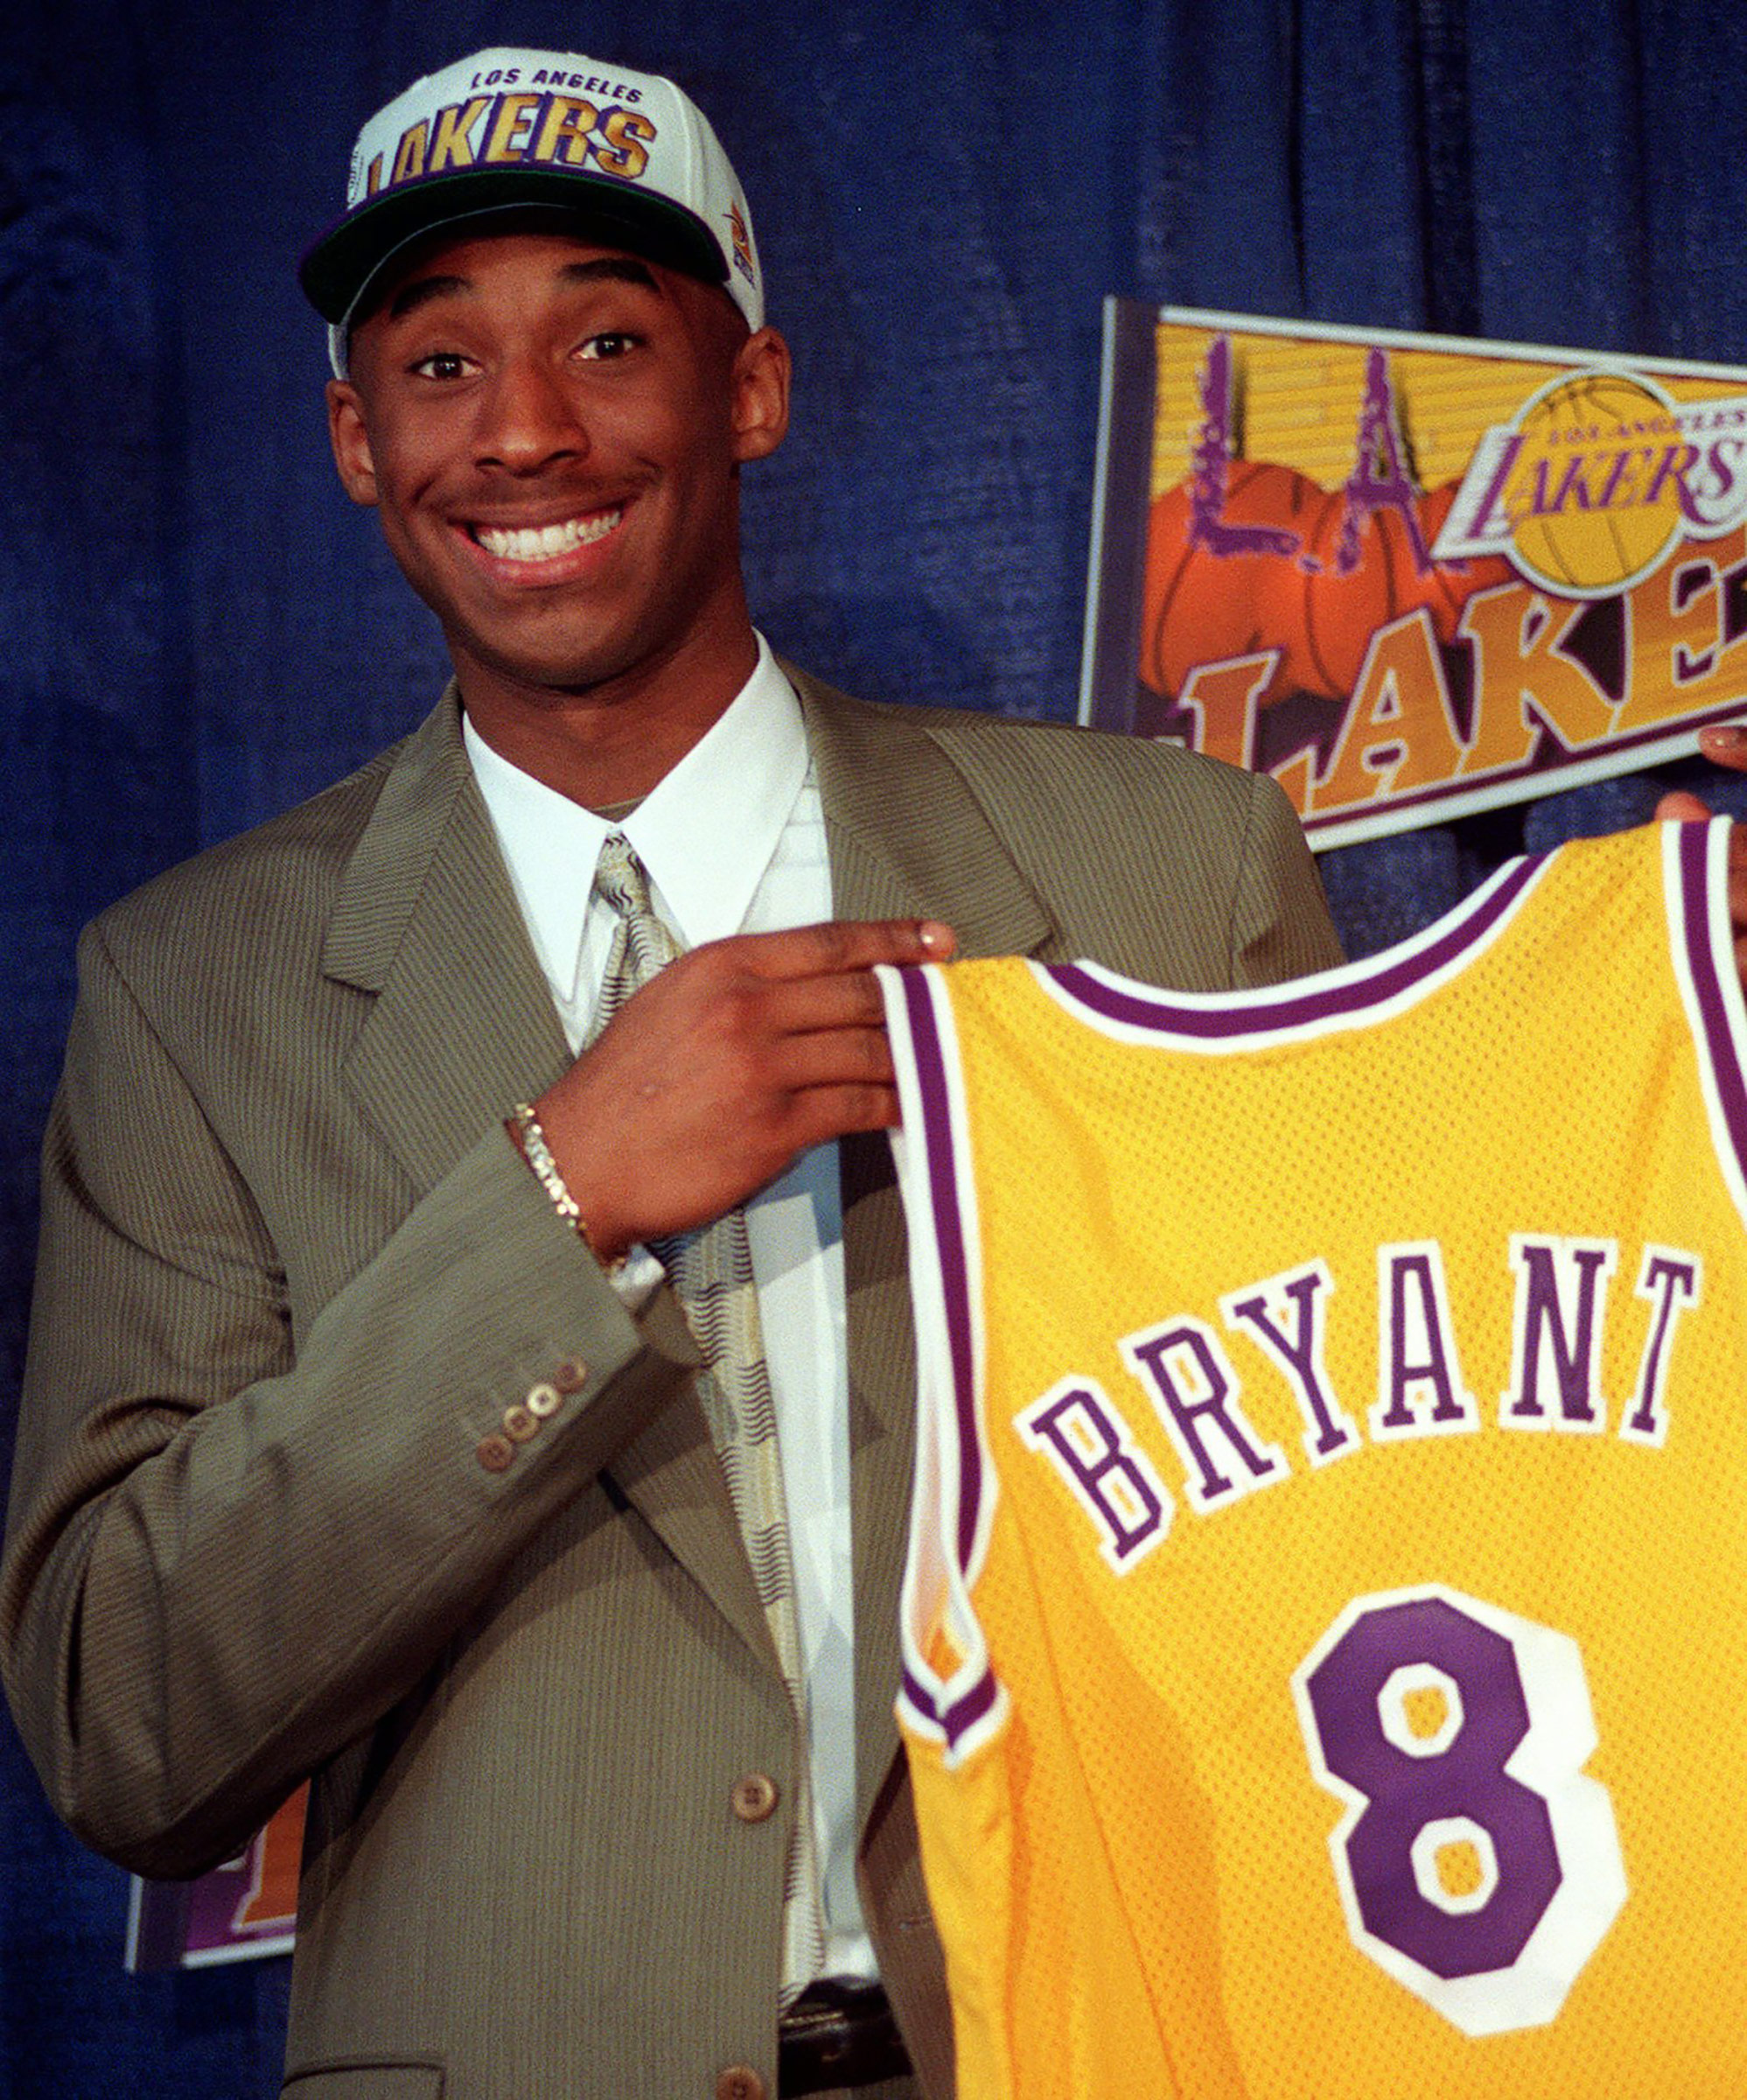 Kobe Bryant, 17, holds his Los Angeles Lakers jersey during a news conference, on July 12, 1996.